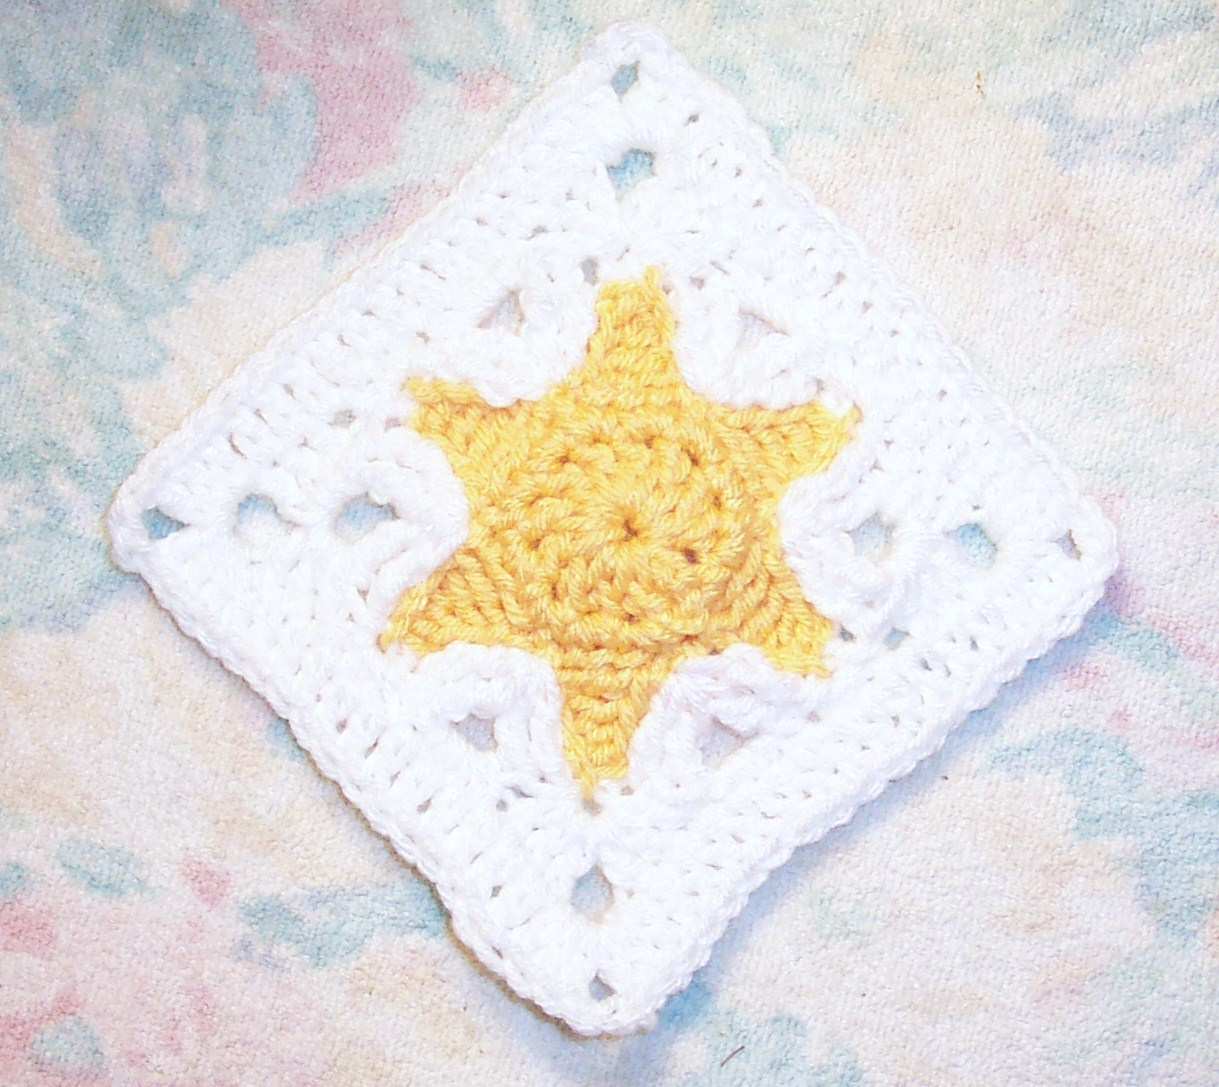 SmoothFox Crochet and Knit: SmoothFox\'s Star Fish Square 6x6